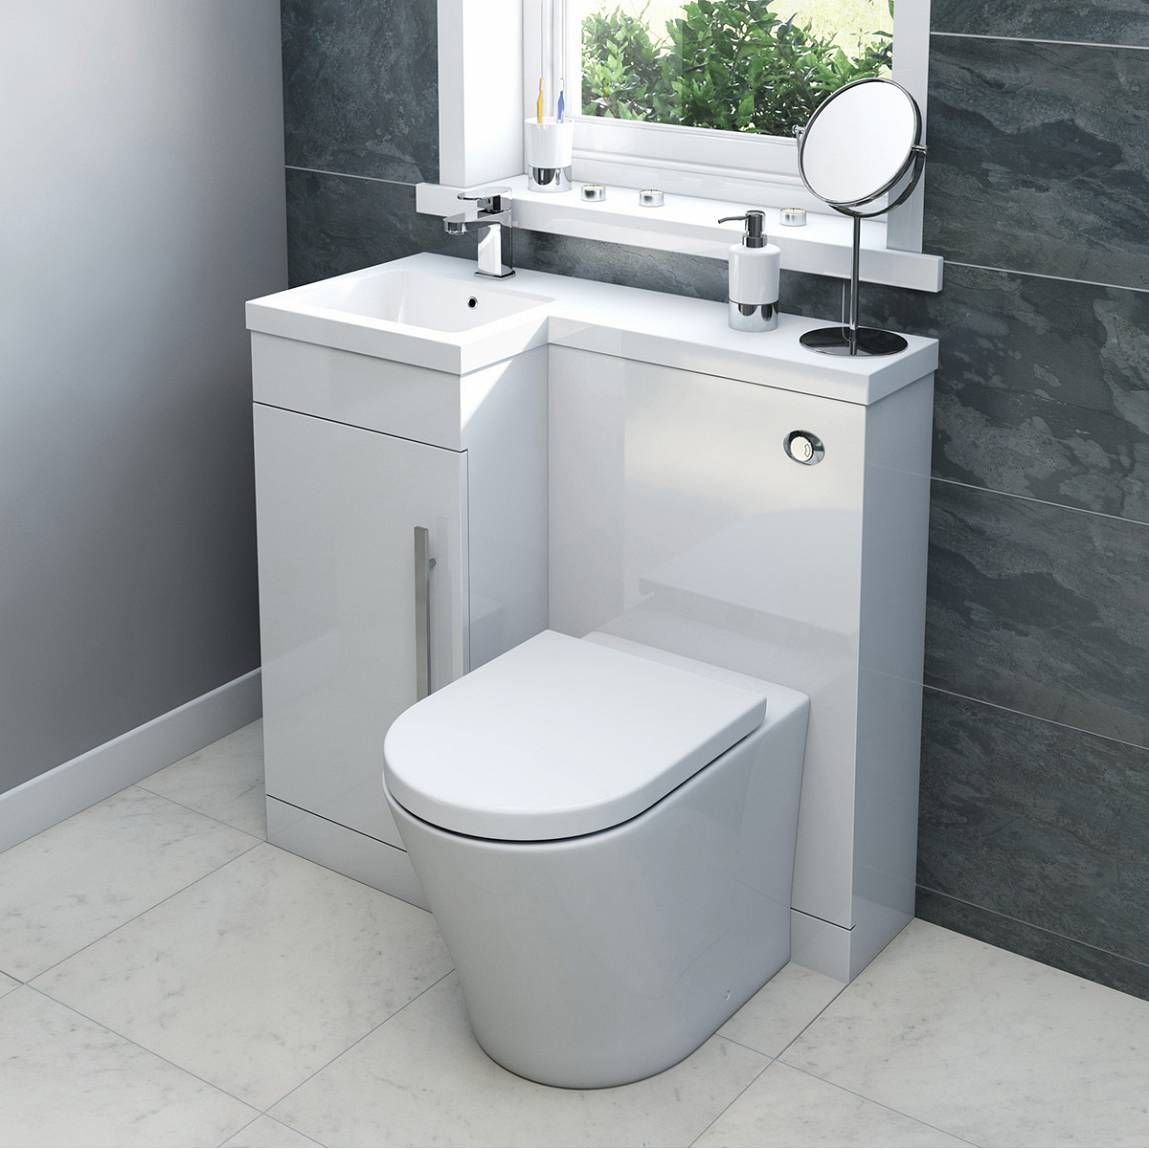 MySpace White Combination Unit with Arc Back to Wall Toilet - https ...